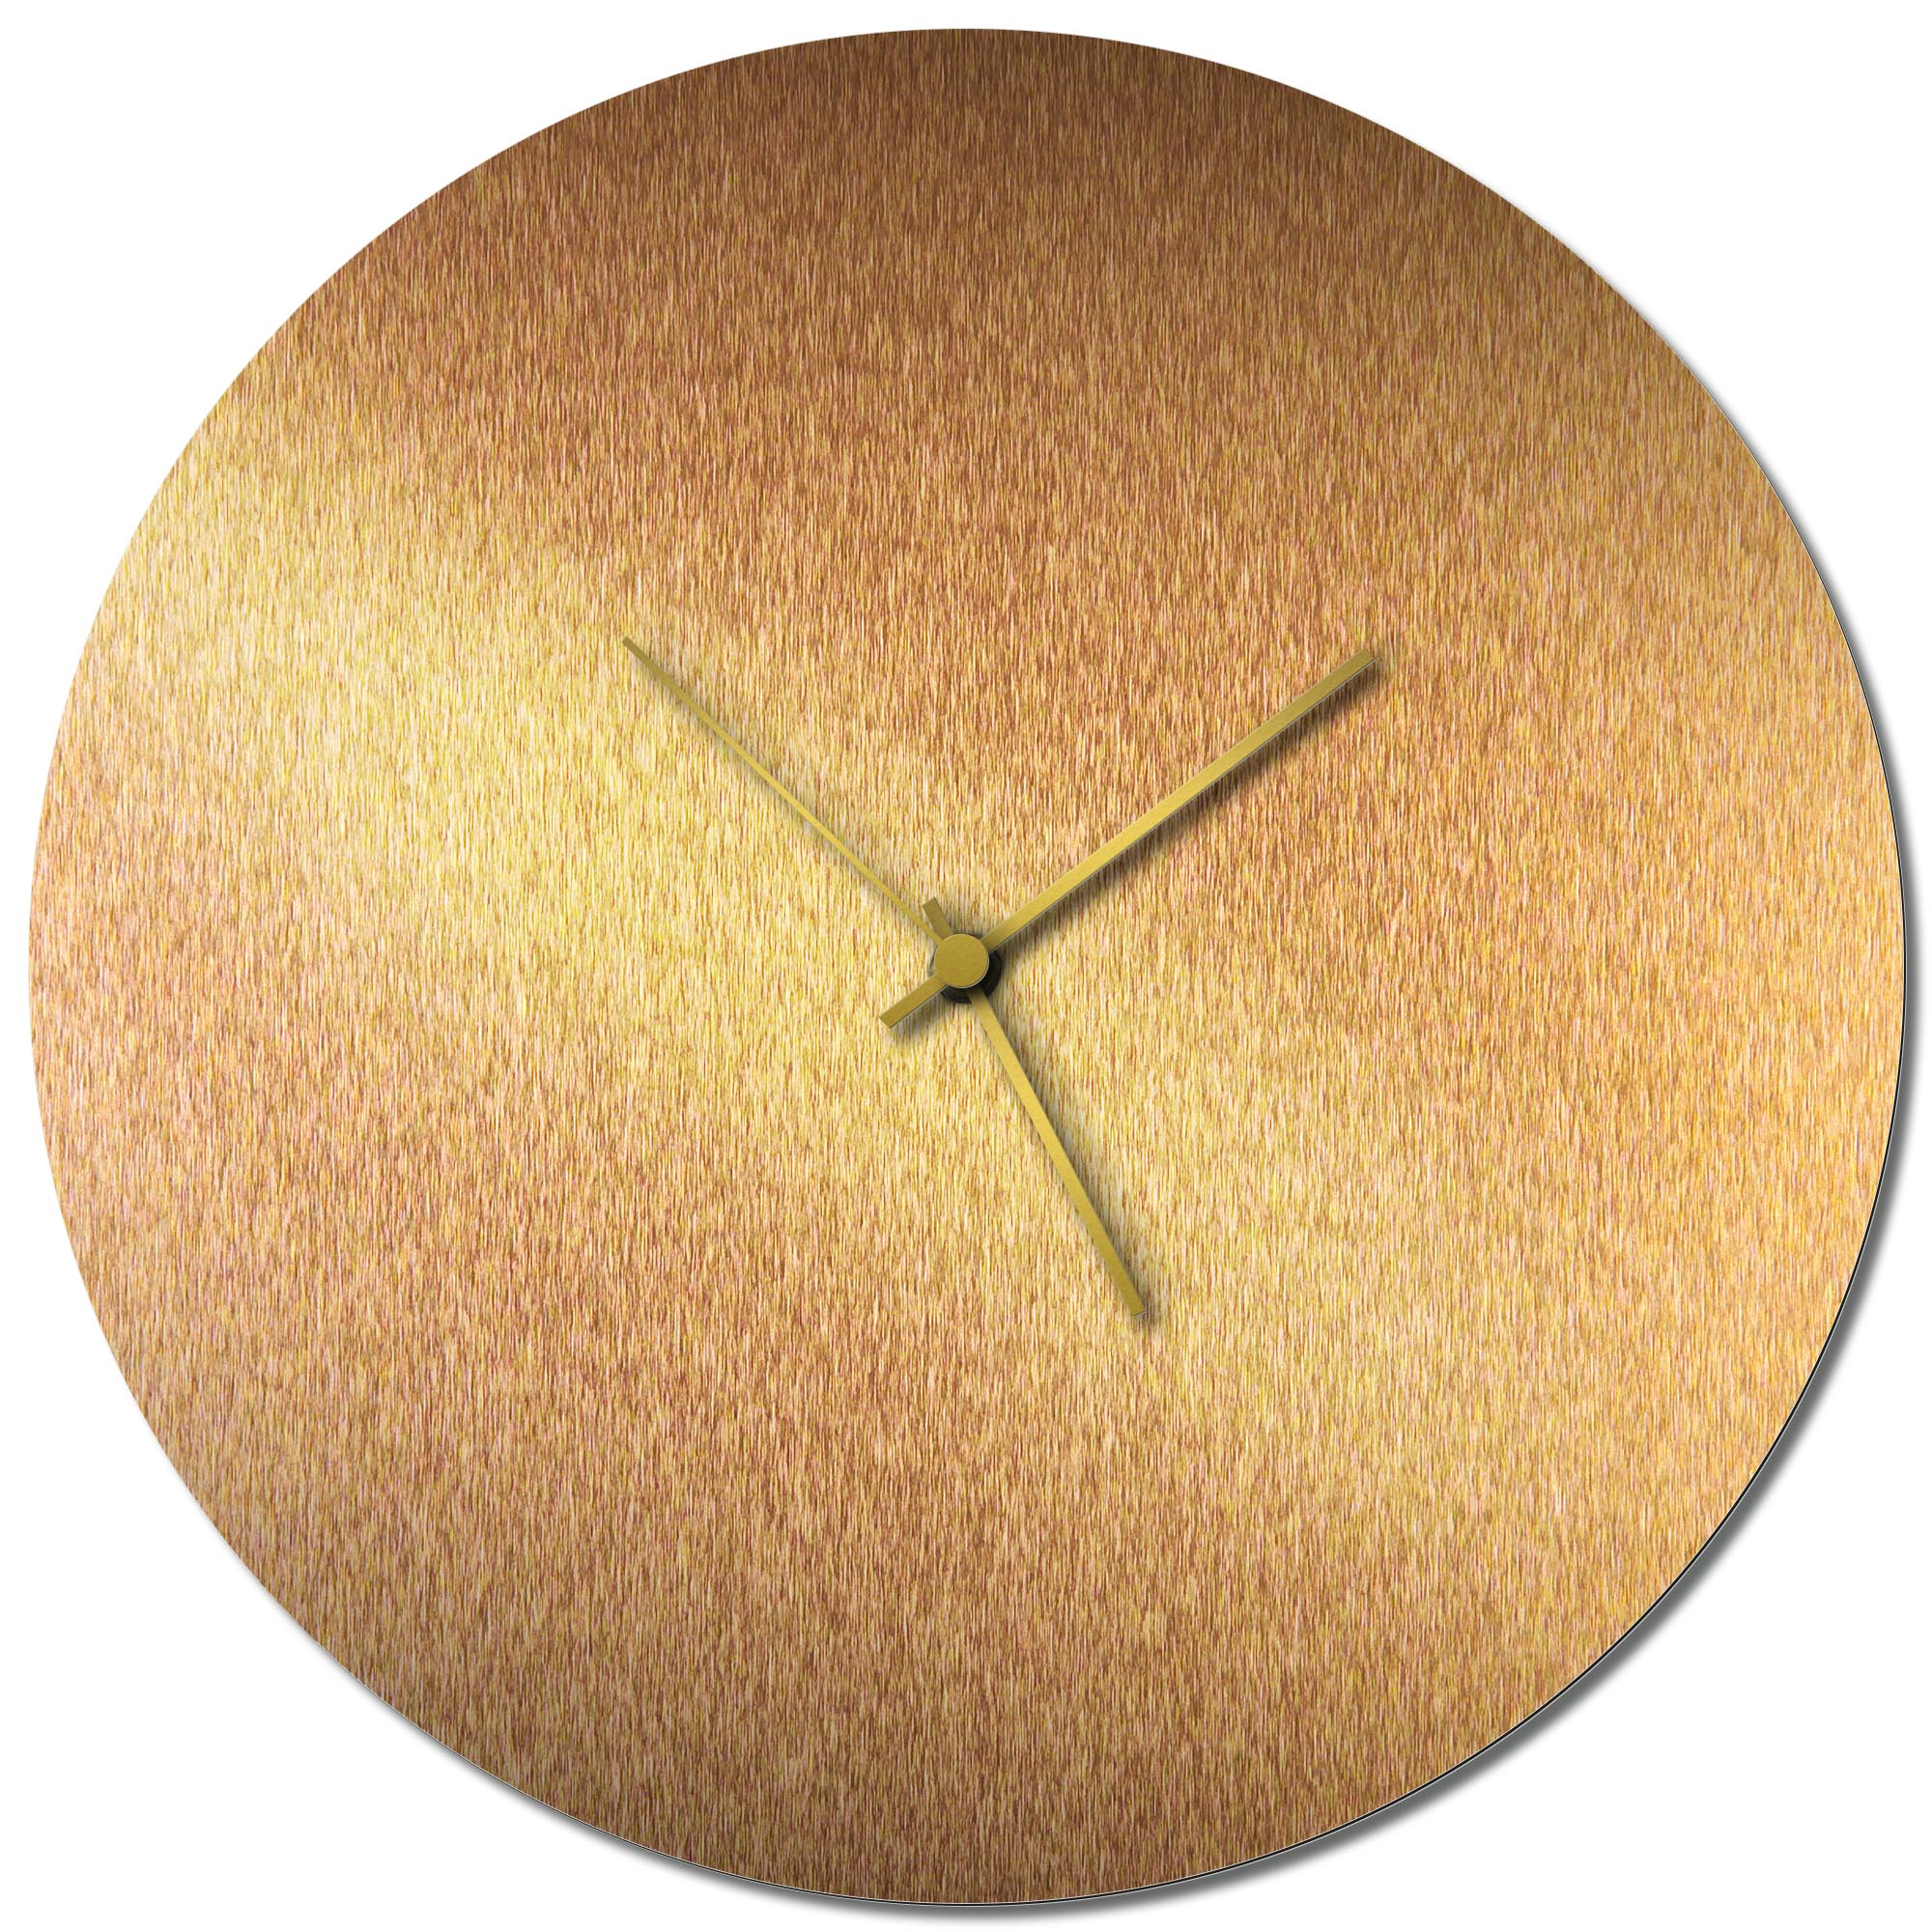 Adam Schwoeppe 'Bronzesmith Circle Clock Gold' Midcentury Modern Style Wall Clock